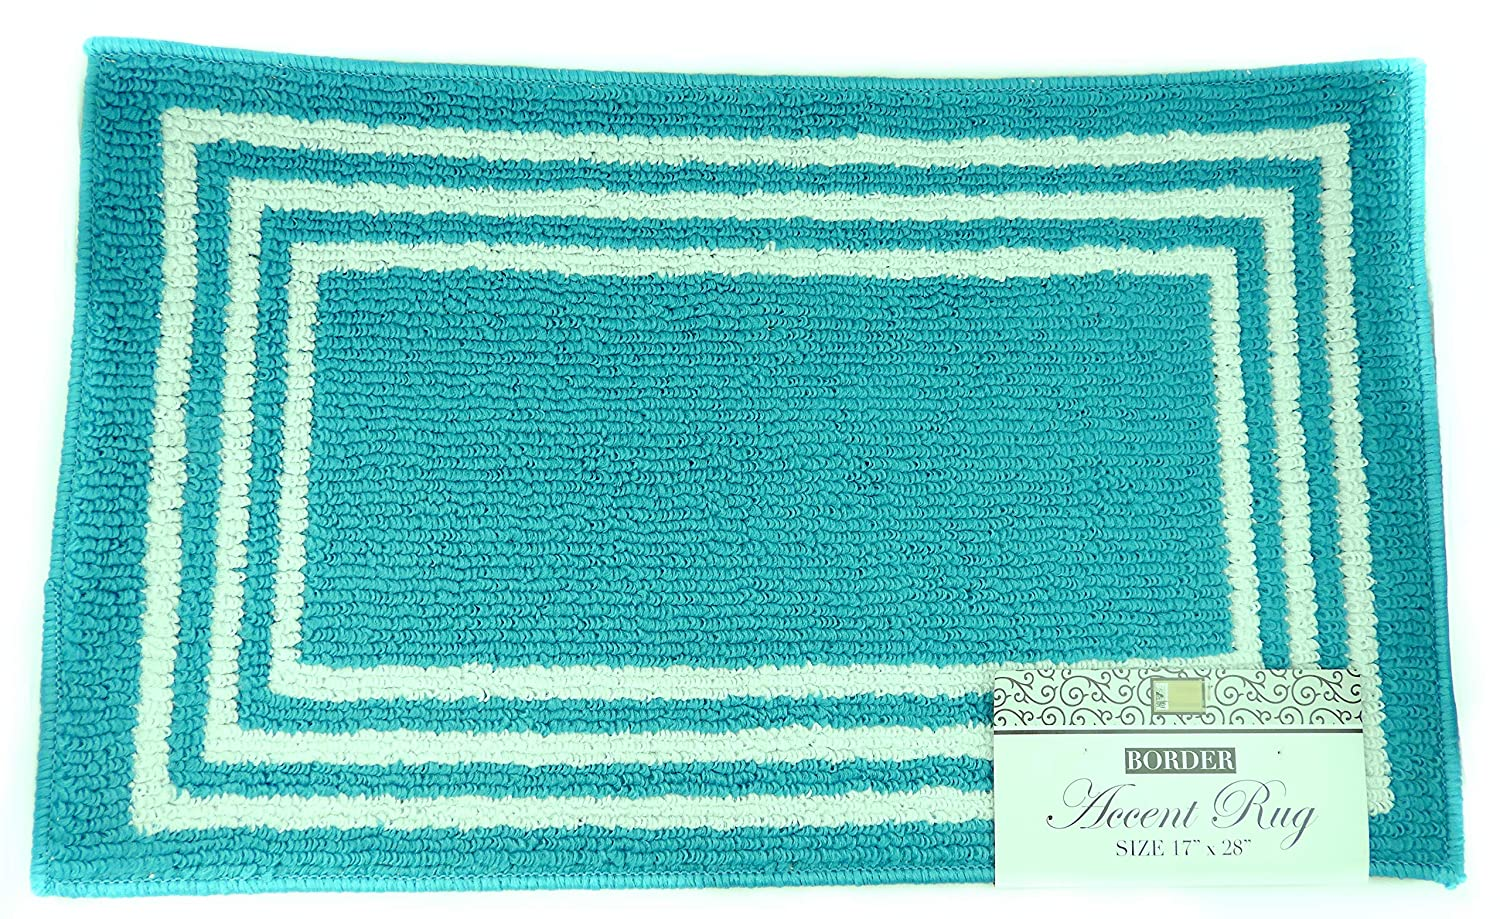 Turquoise Dependable Industries inc DINY Home /& Style Accent Rug Rectangle Boxes Design 17 x 28 Machine Washable Latex Backing